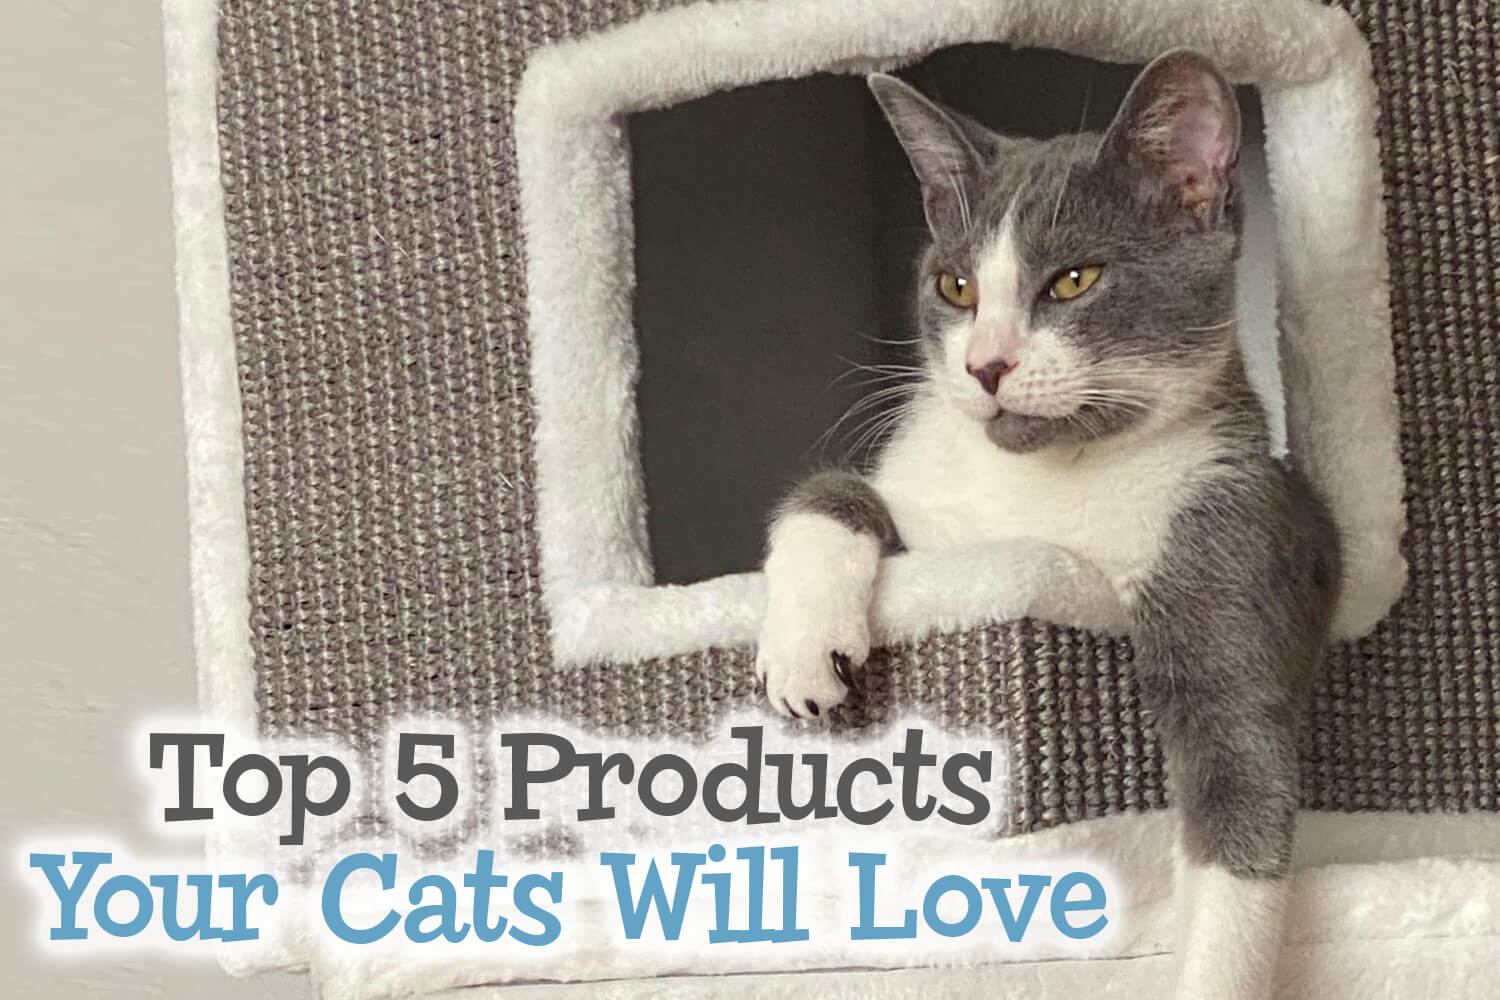 Top 5 Products Your Cats Will Love